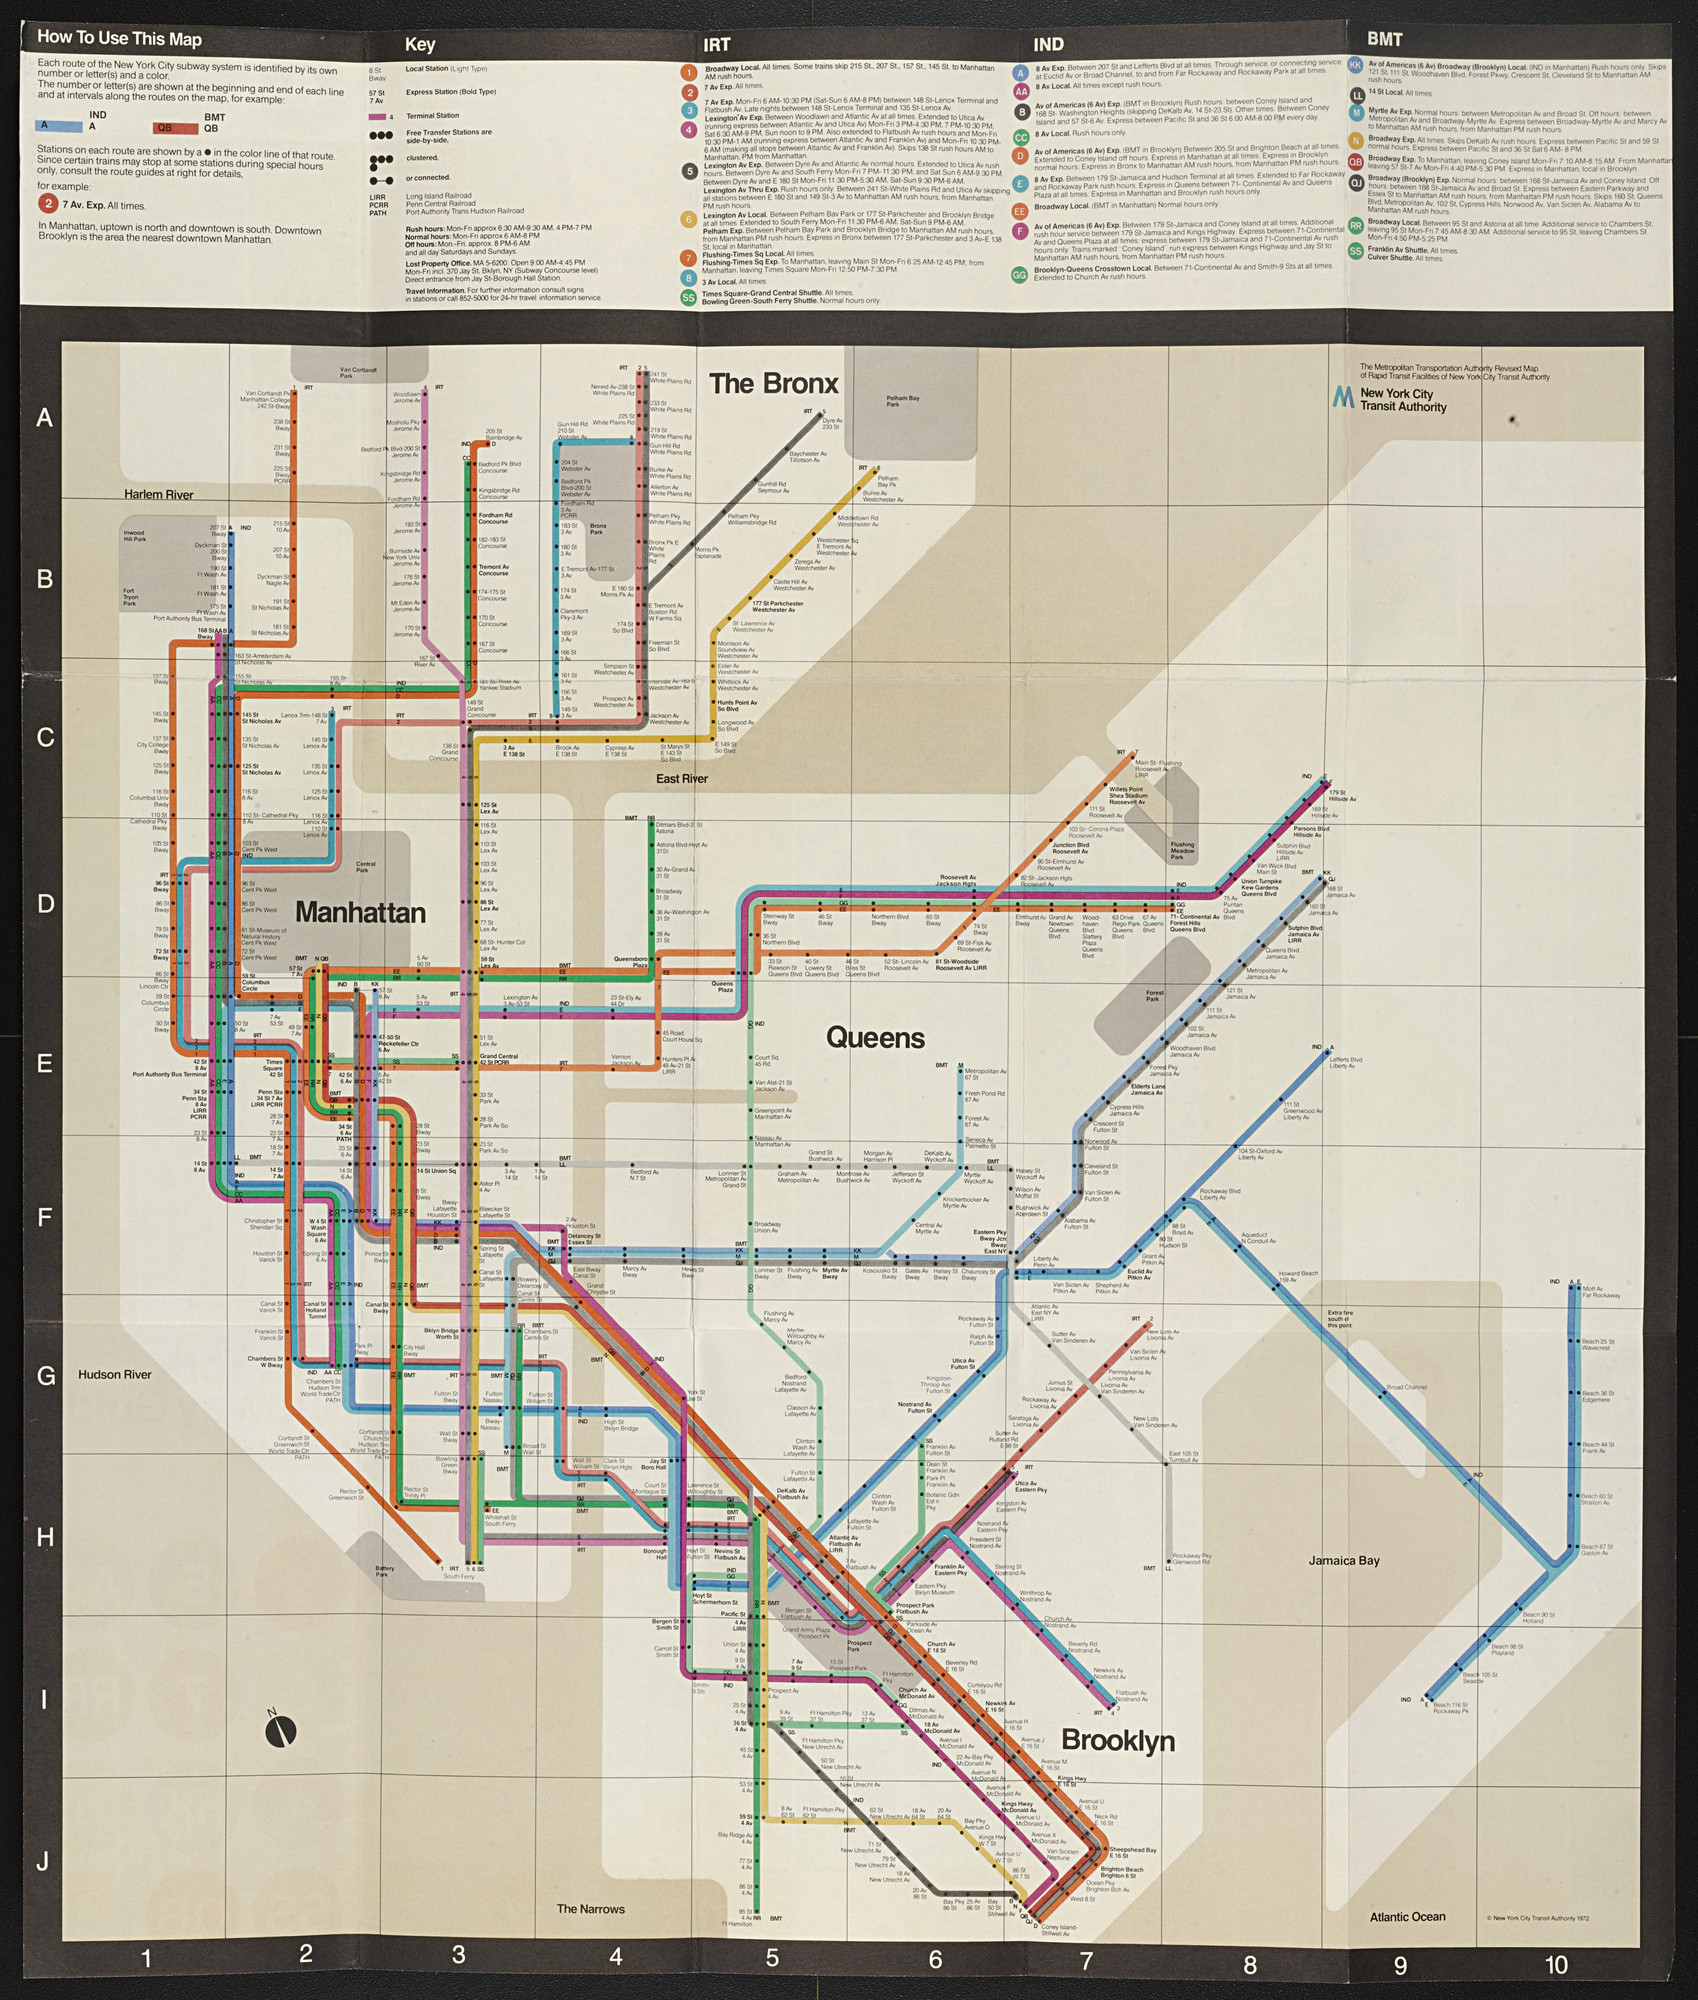 Massimo Vignelli, Joan Charysyn, Bob Noorda, Unimark International Corporation, New York. New York City Subway Guide. 1970–1972